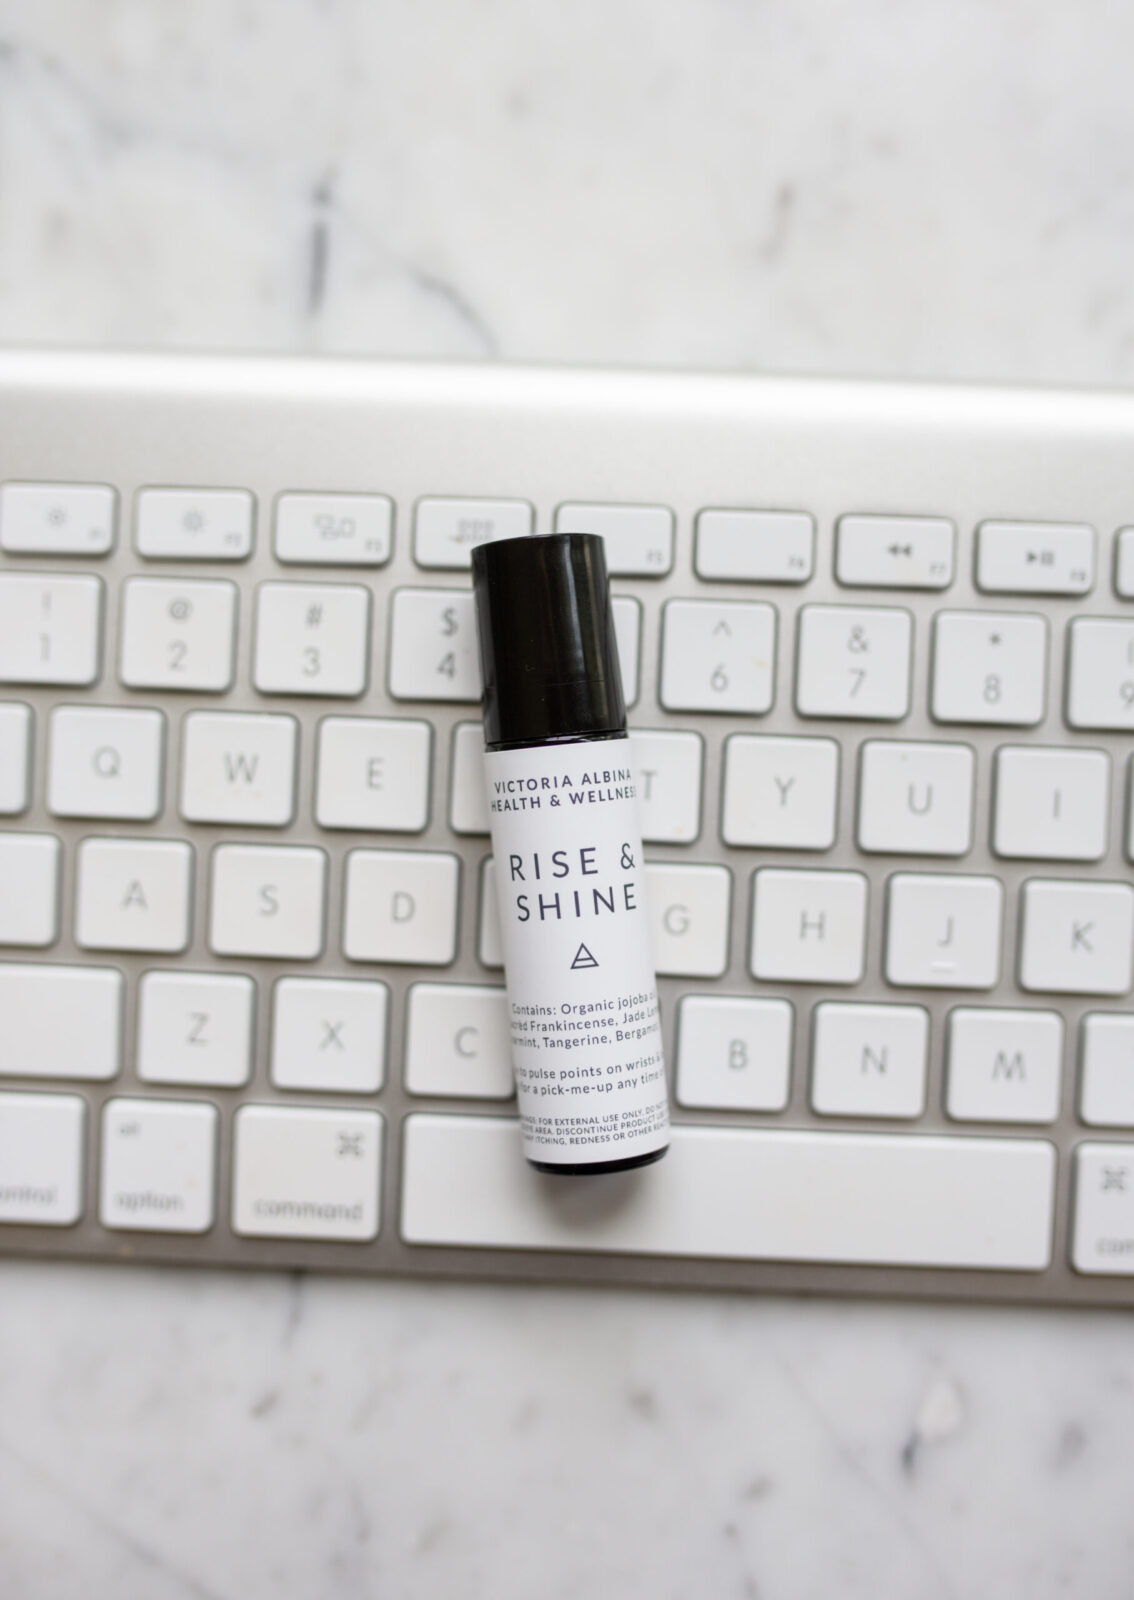 Rise and shine essential oil roller on keyboard